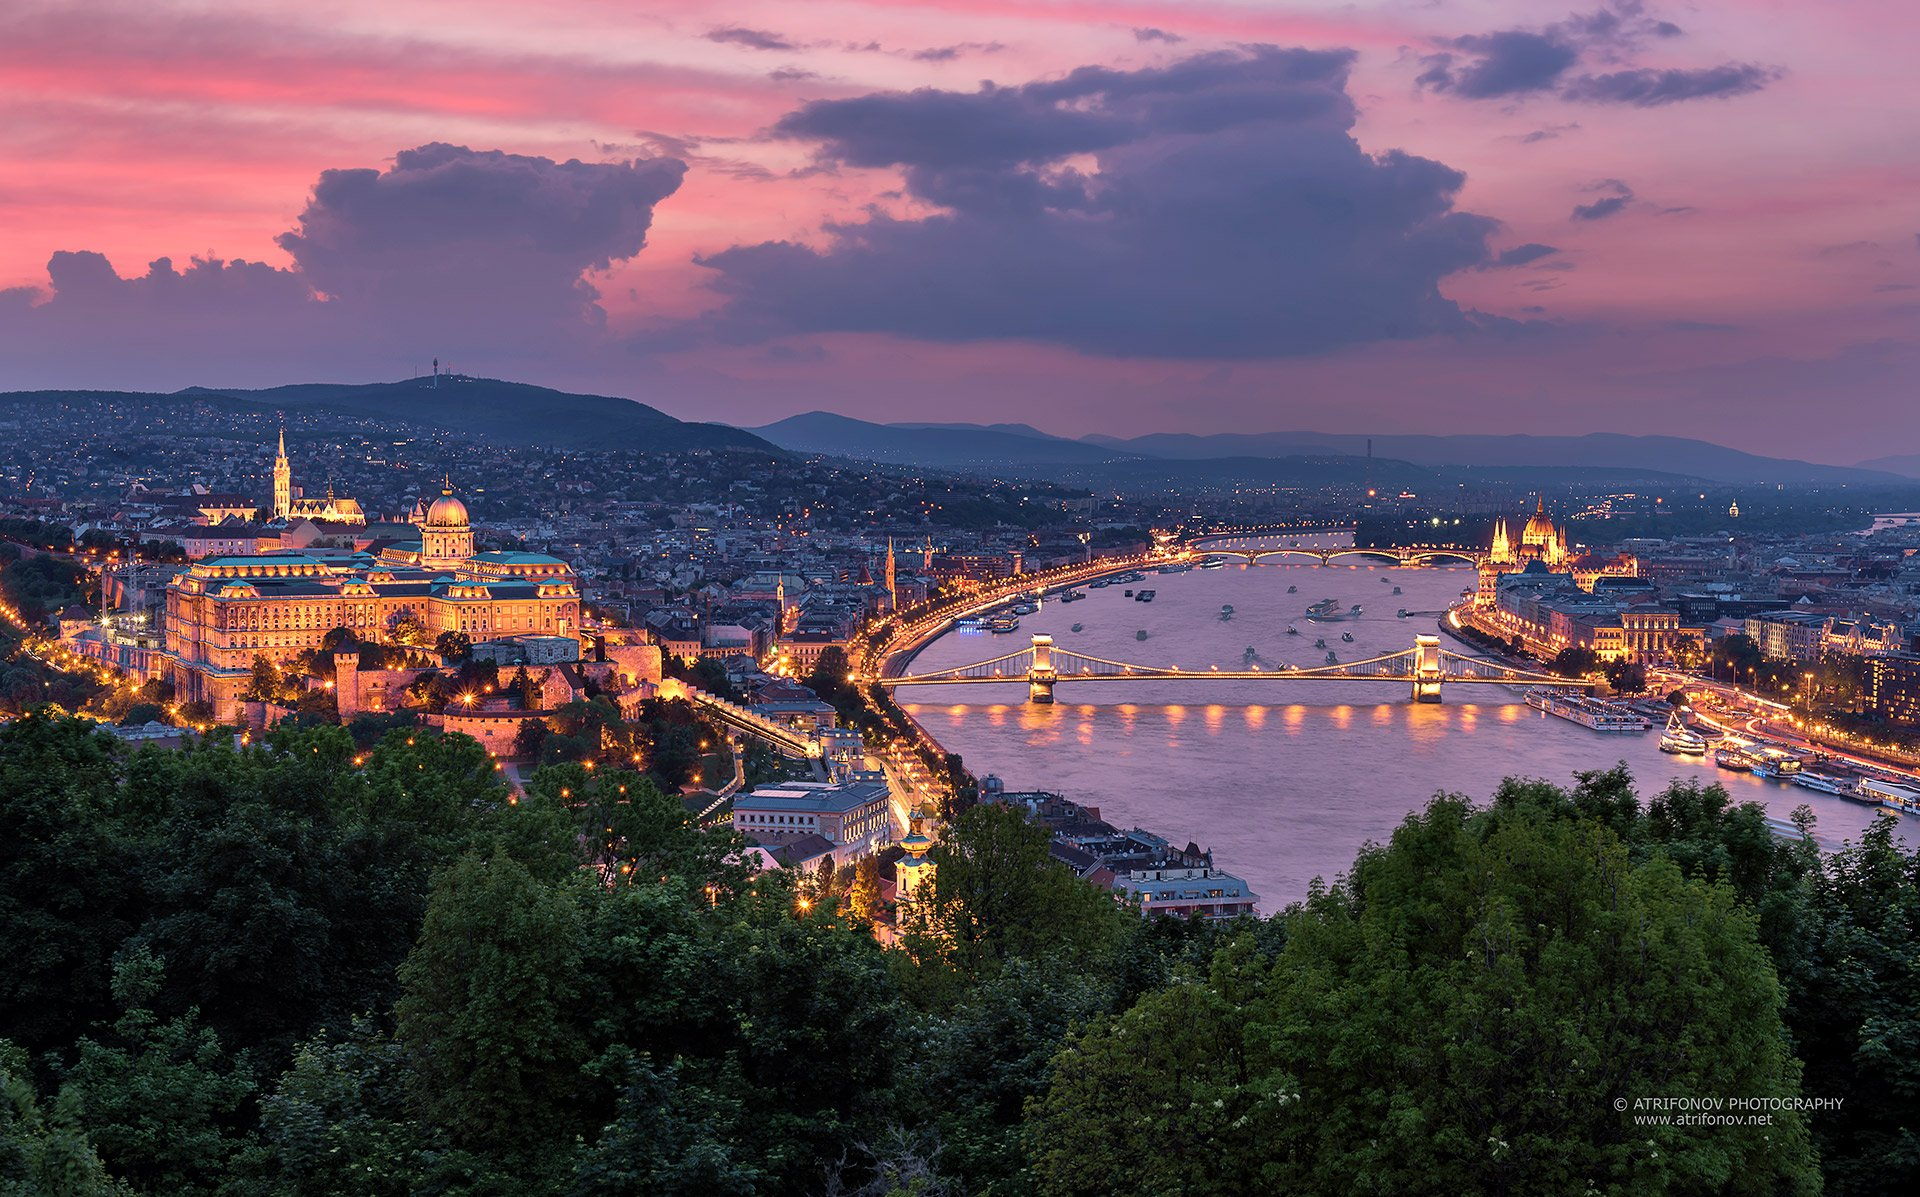 budapest, hungary, buda castle, szechenyi bridge, parliament, sunset, cityscape, city lights, Andrey Trifonov